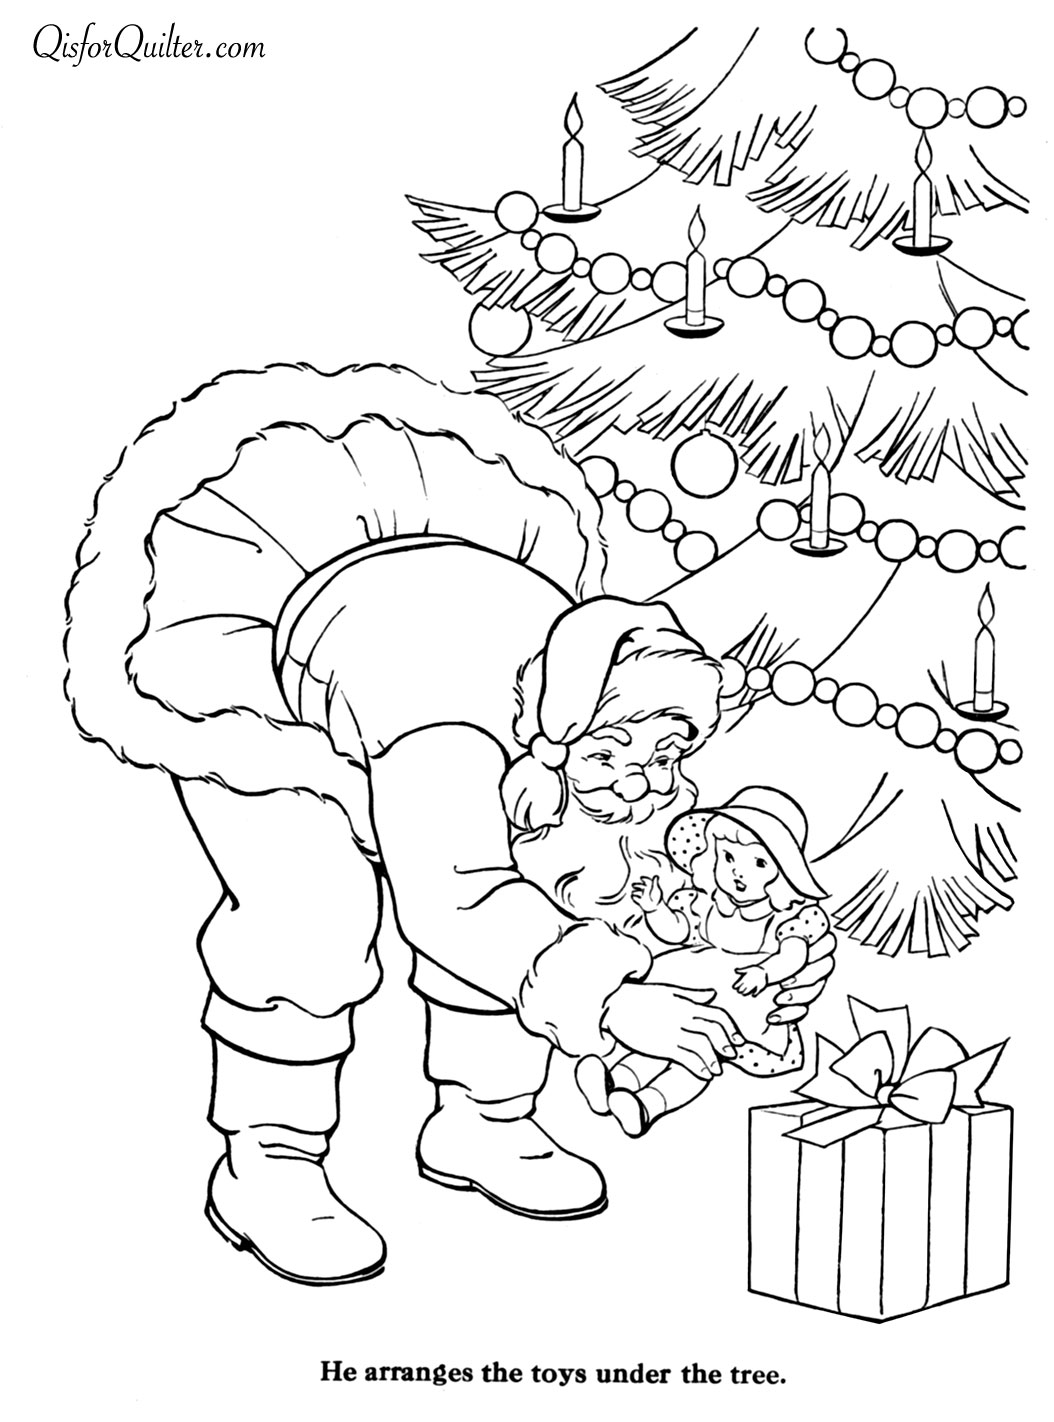 coloring book embroidery december 2014 q is for quilter